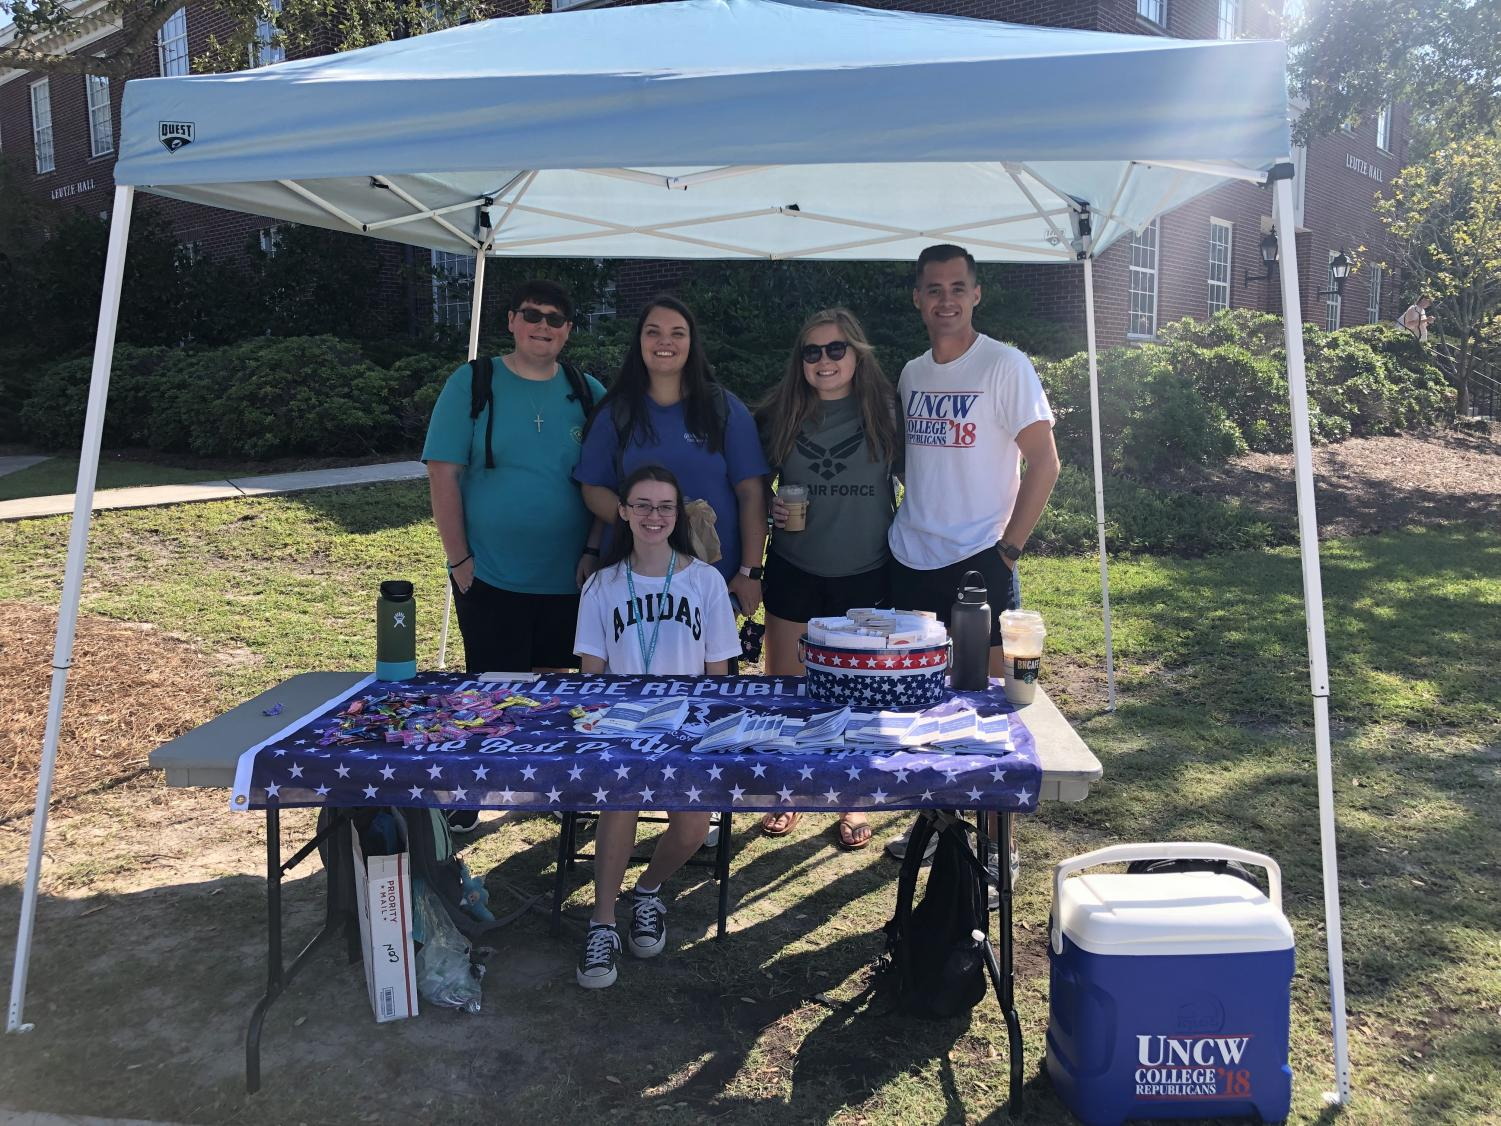 UNCW's College Republicans club with a table for Constitution Day on Sept. 17, 2019